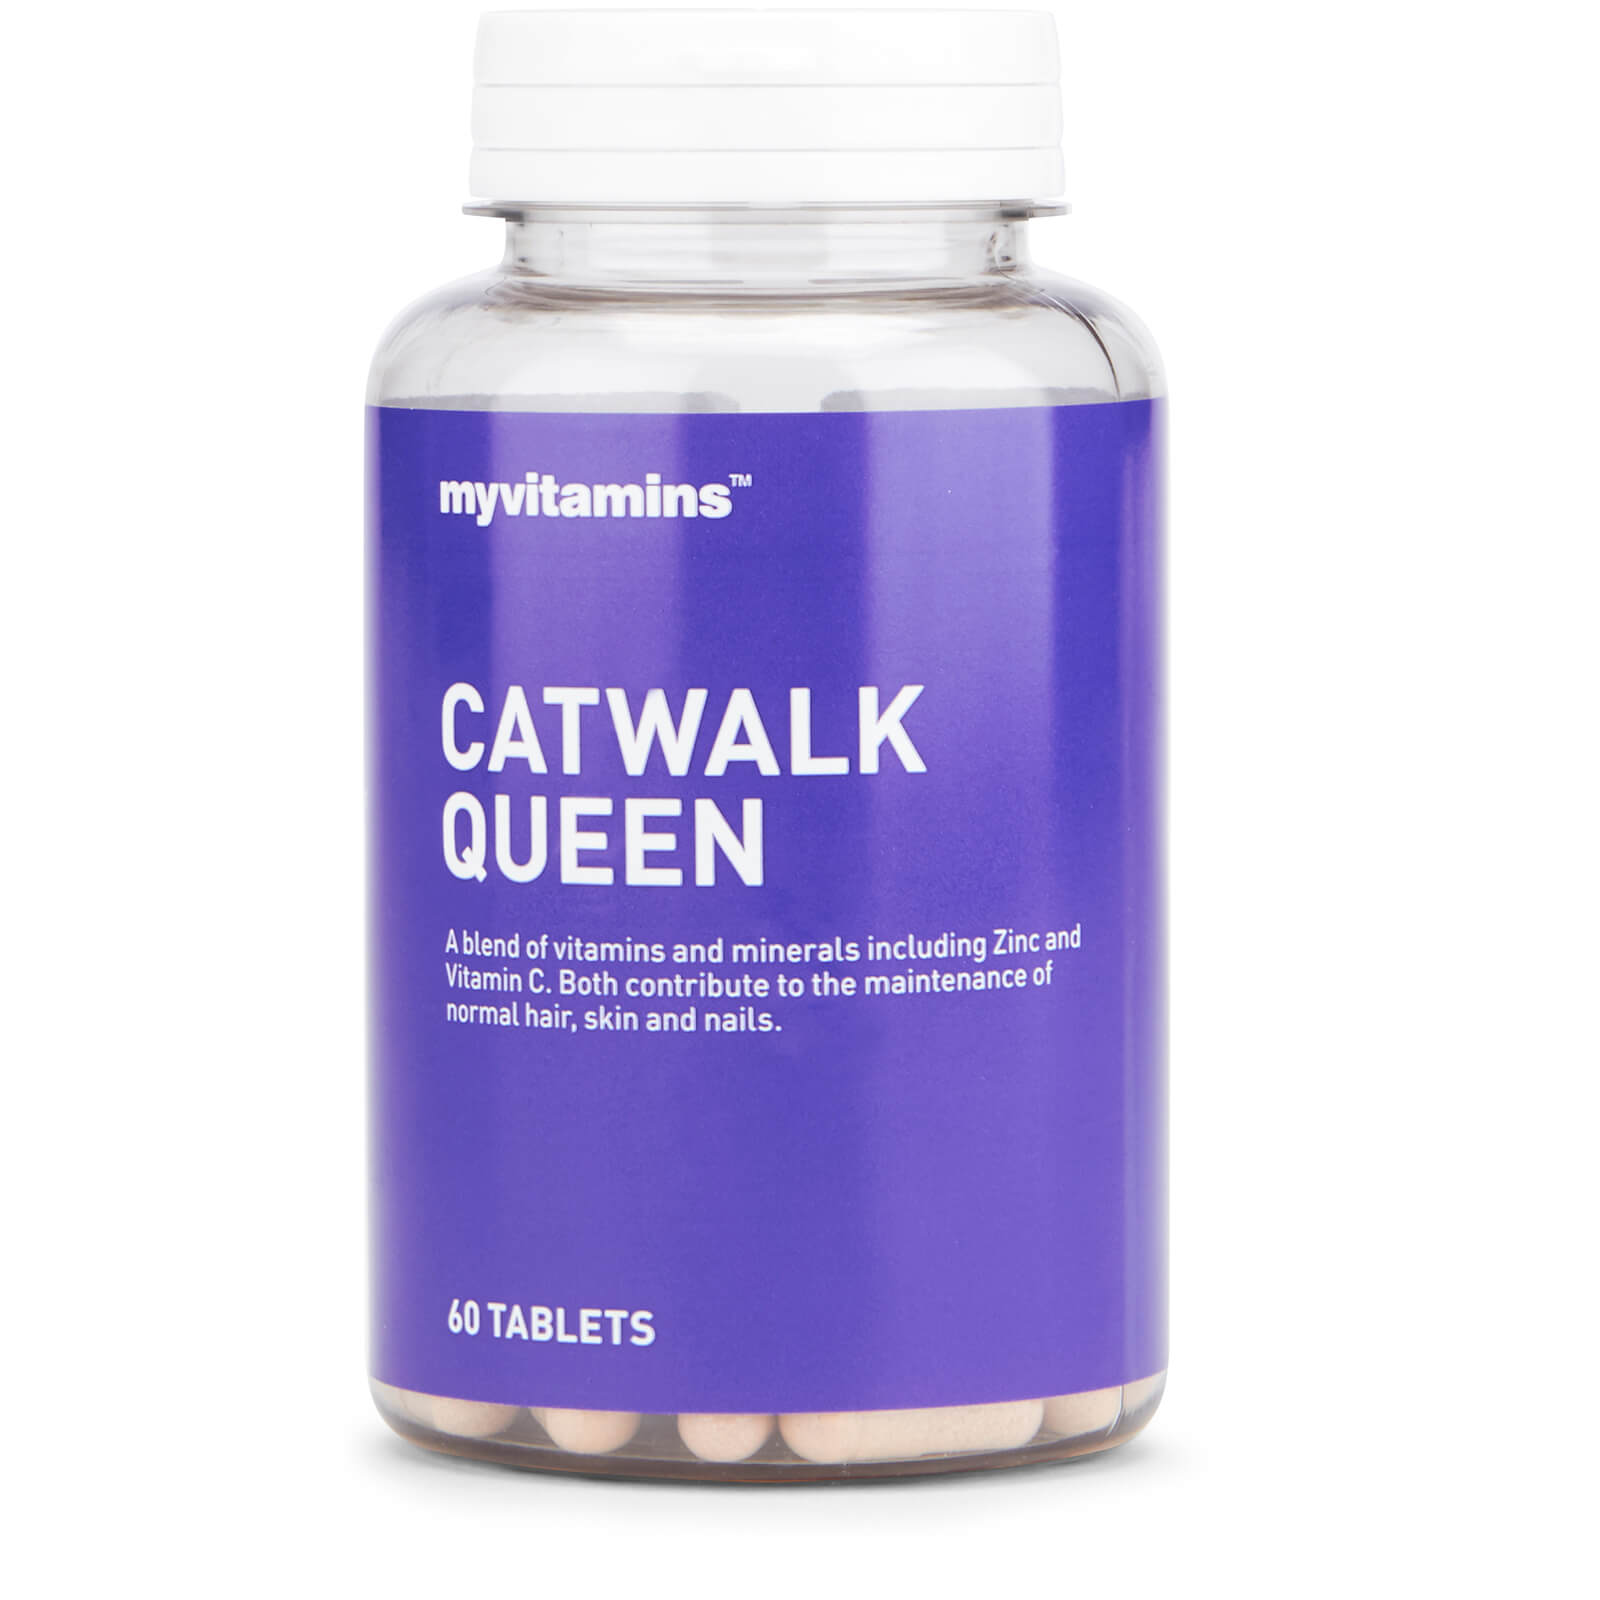 Myvitamins Catwalk Queen, 30 Tablets